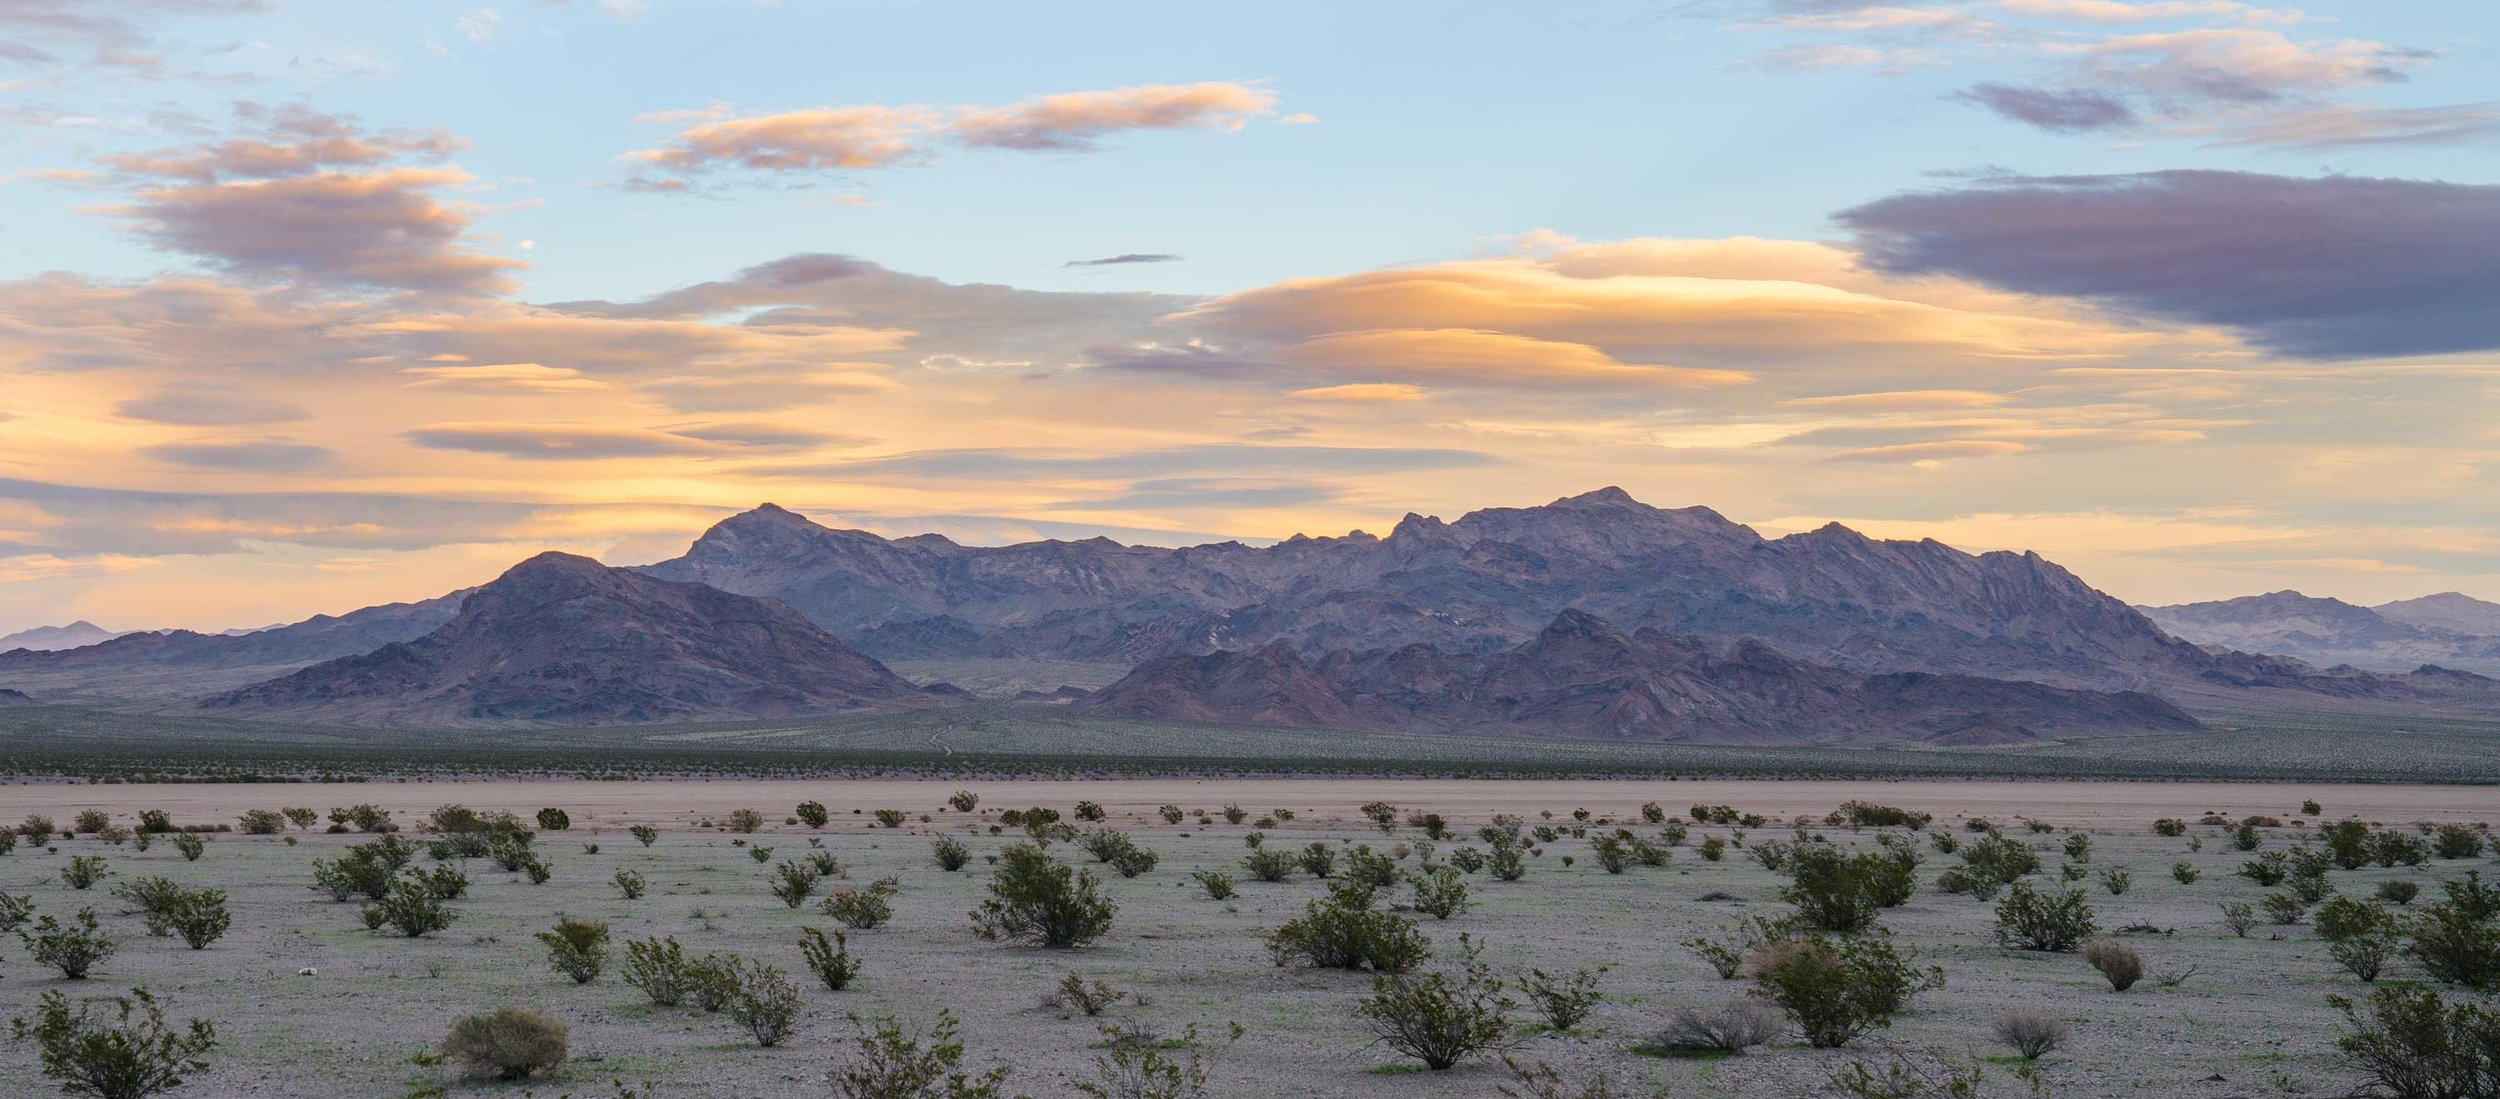 A sunset with lenticular cloud formations near Tecopa.